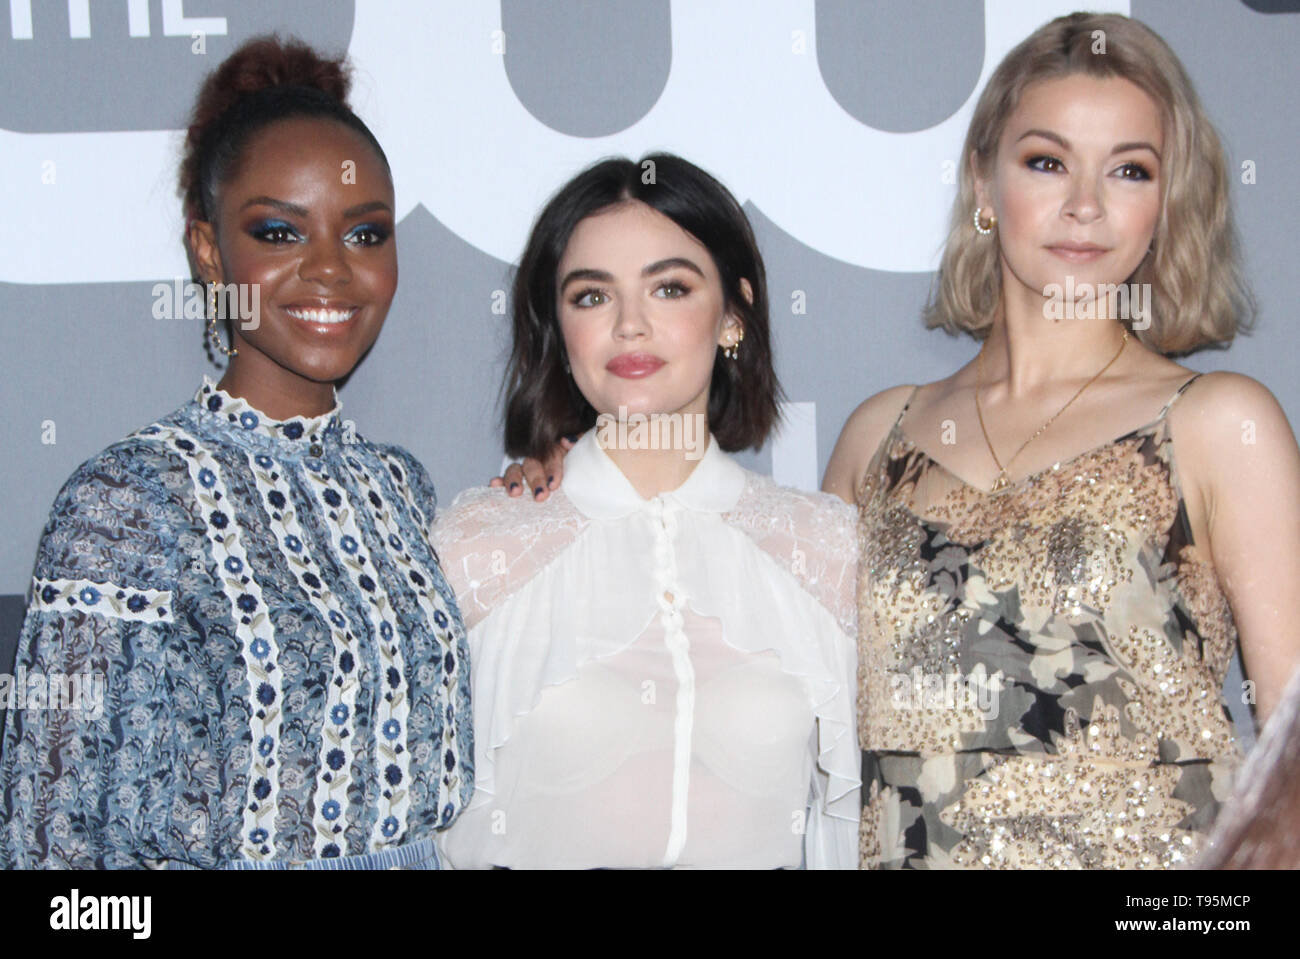 New York, USA. 16th May 2019. Ashleigh Murray, Lucy Hale, Julia Chan, Johnny Beauchamp attend 2019 The CW Upfront New York City Center in New York New York, USA. 16th May 2019. Credit:RW/MediaPunchRuby Rose Credit: MediaPunch Inc/Alamy Live News - Stock Image